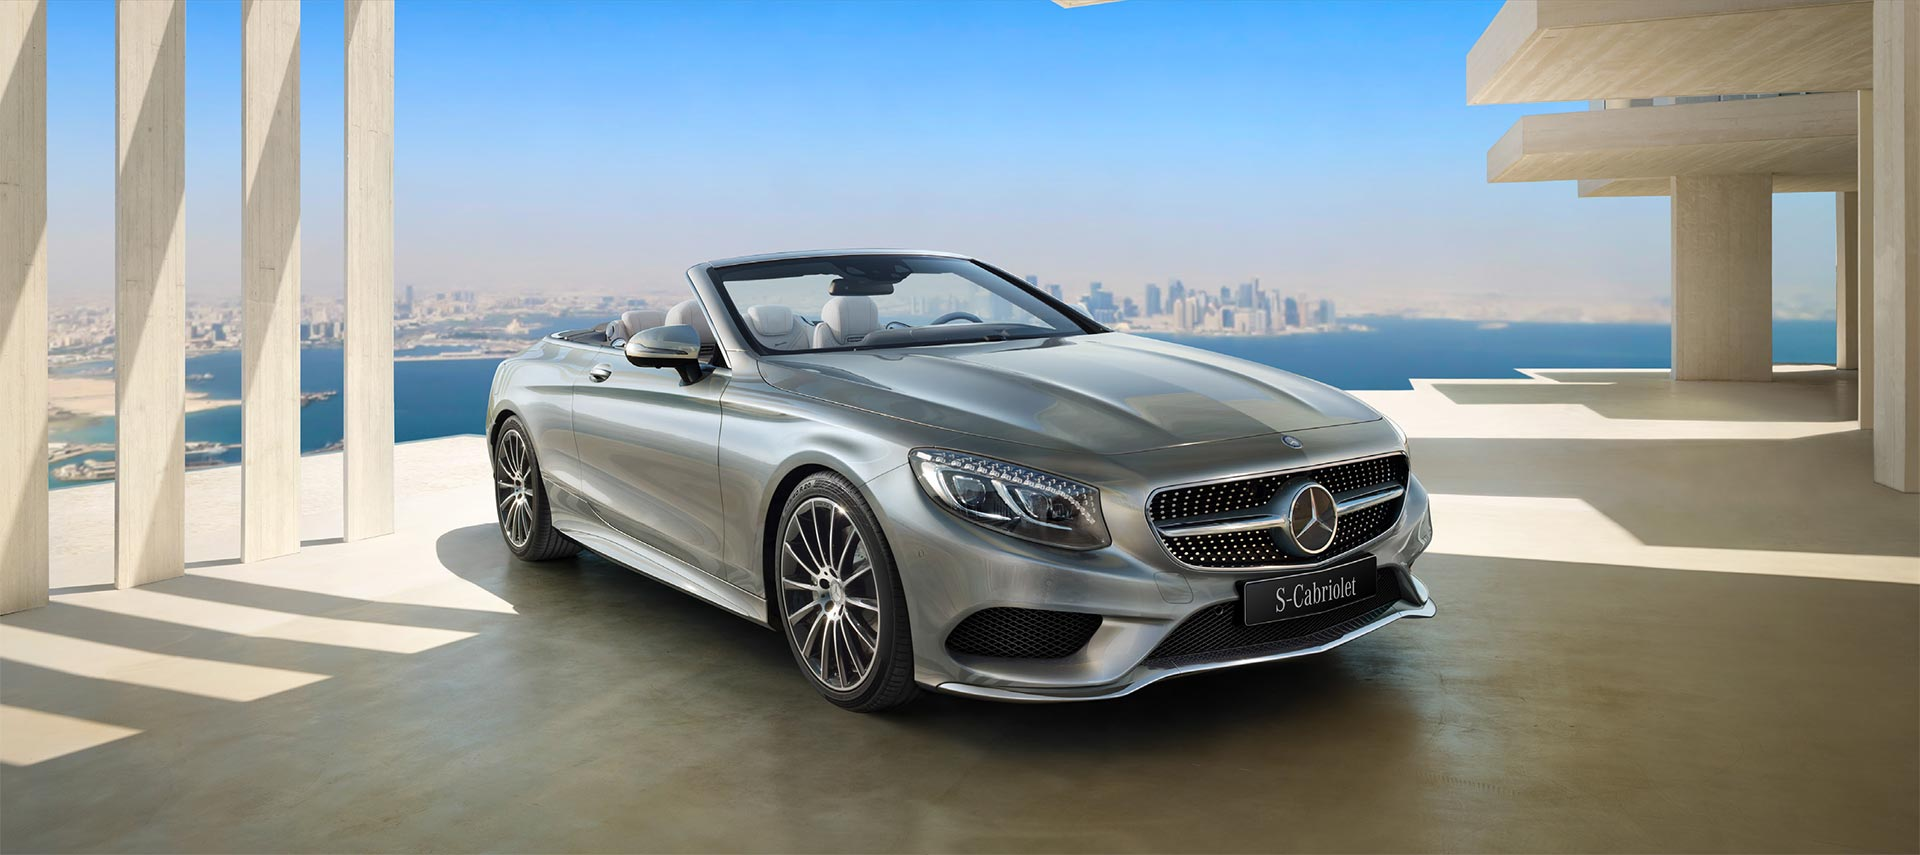 Limited time offer from Nasser Bin Khaled on the Mercedes-Benz S-Class